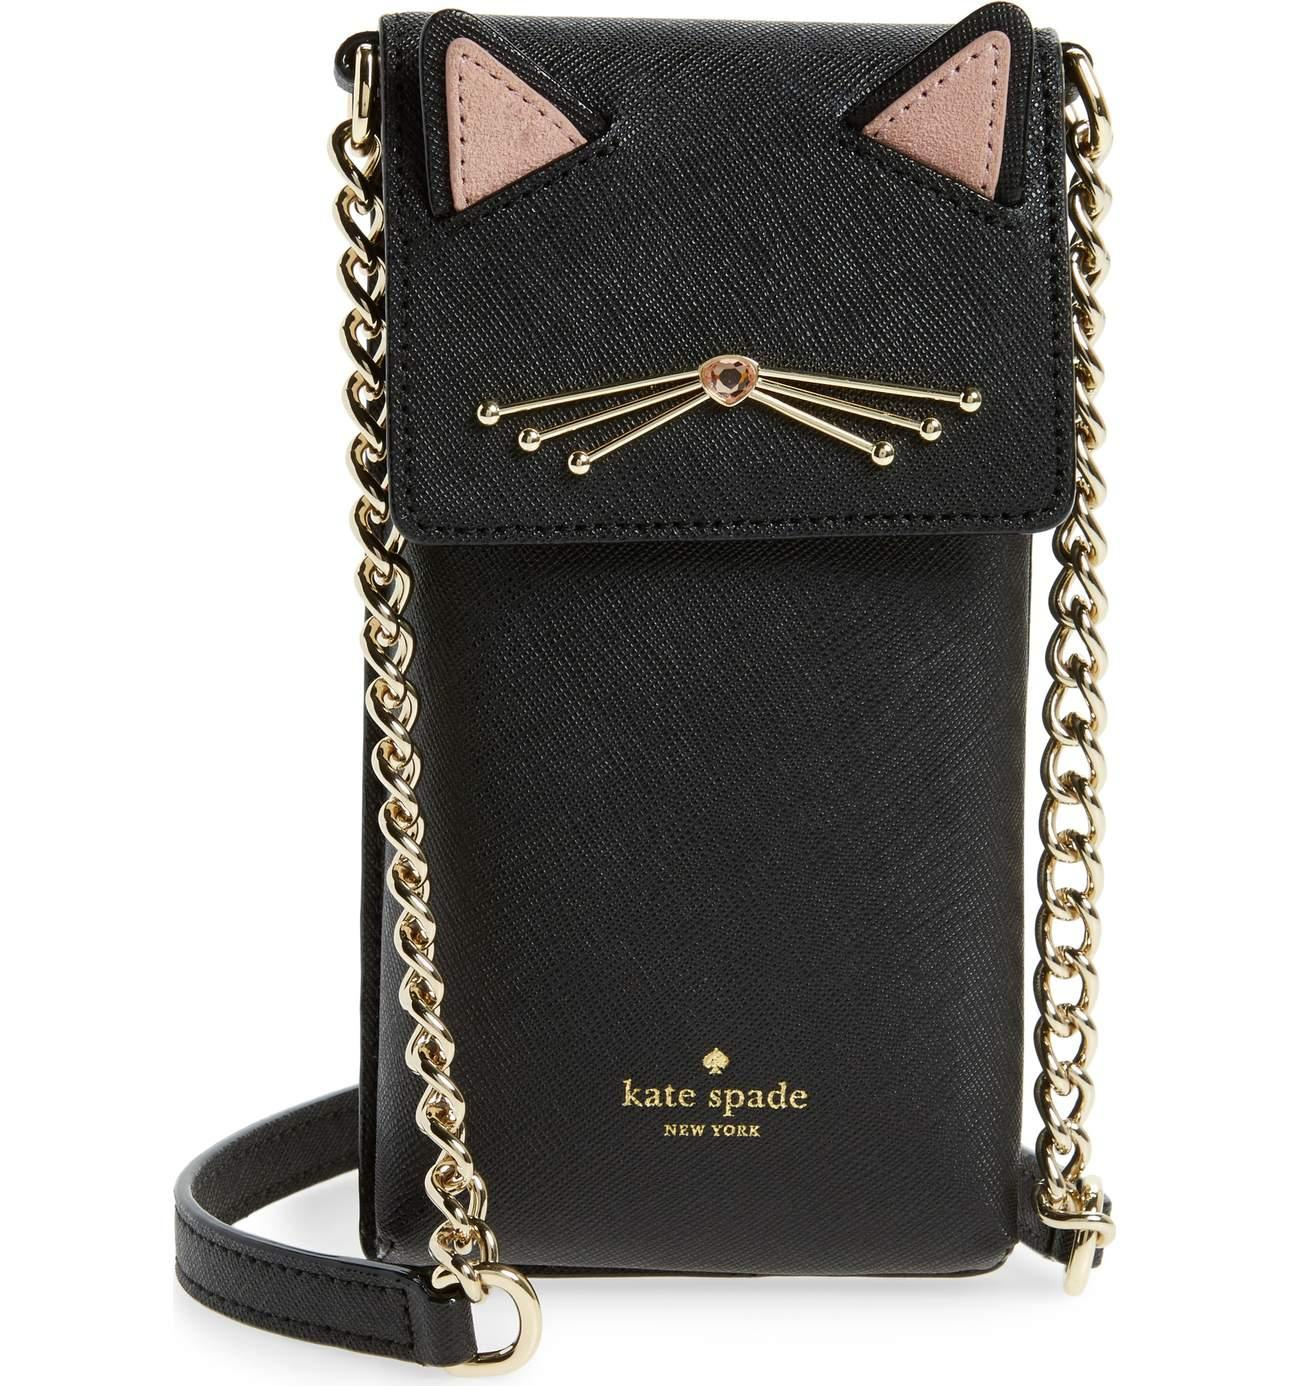 <p>Cat Smartphone Crossbody Bag - $128. This Kate Spade bag is to die for, SO CUTE!{&amp;nbsp;} Perfect for a high school gal or dare I say the 'cat lady' in your hood? Either way, its darling.{&amp;nbsp;} Cost: $128. For purchase at Nordstrom or Kate Spade. (Image: Nordstrom)</p><p></p>